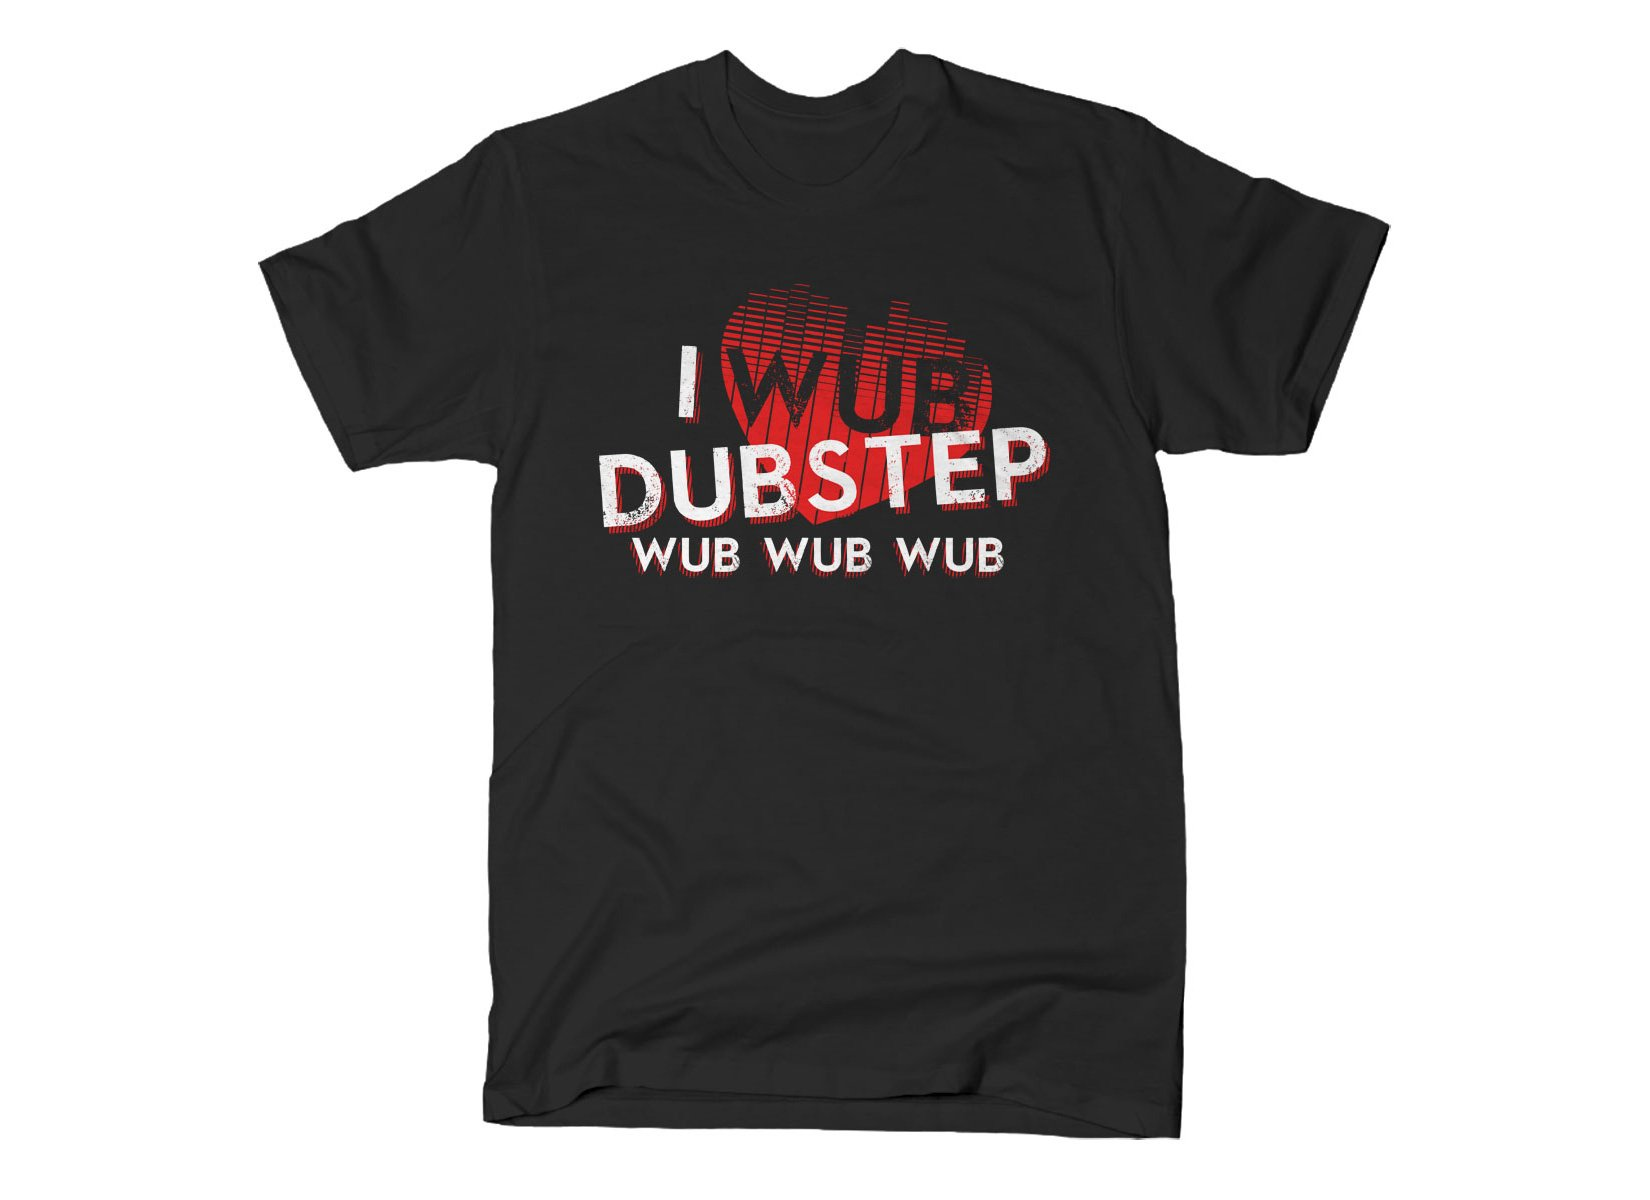 I Wub Dubstep on Mens T-Shirt